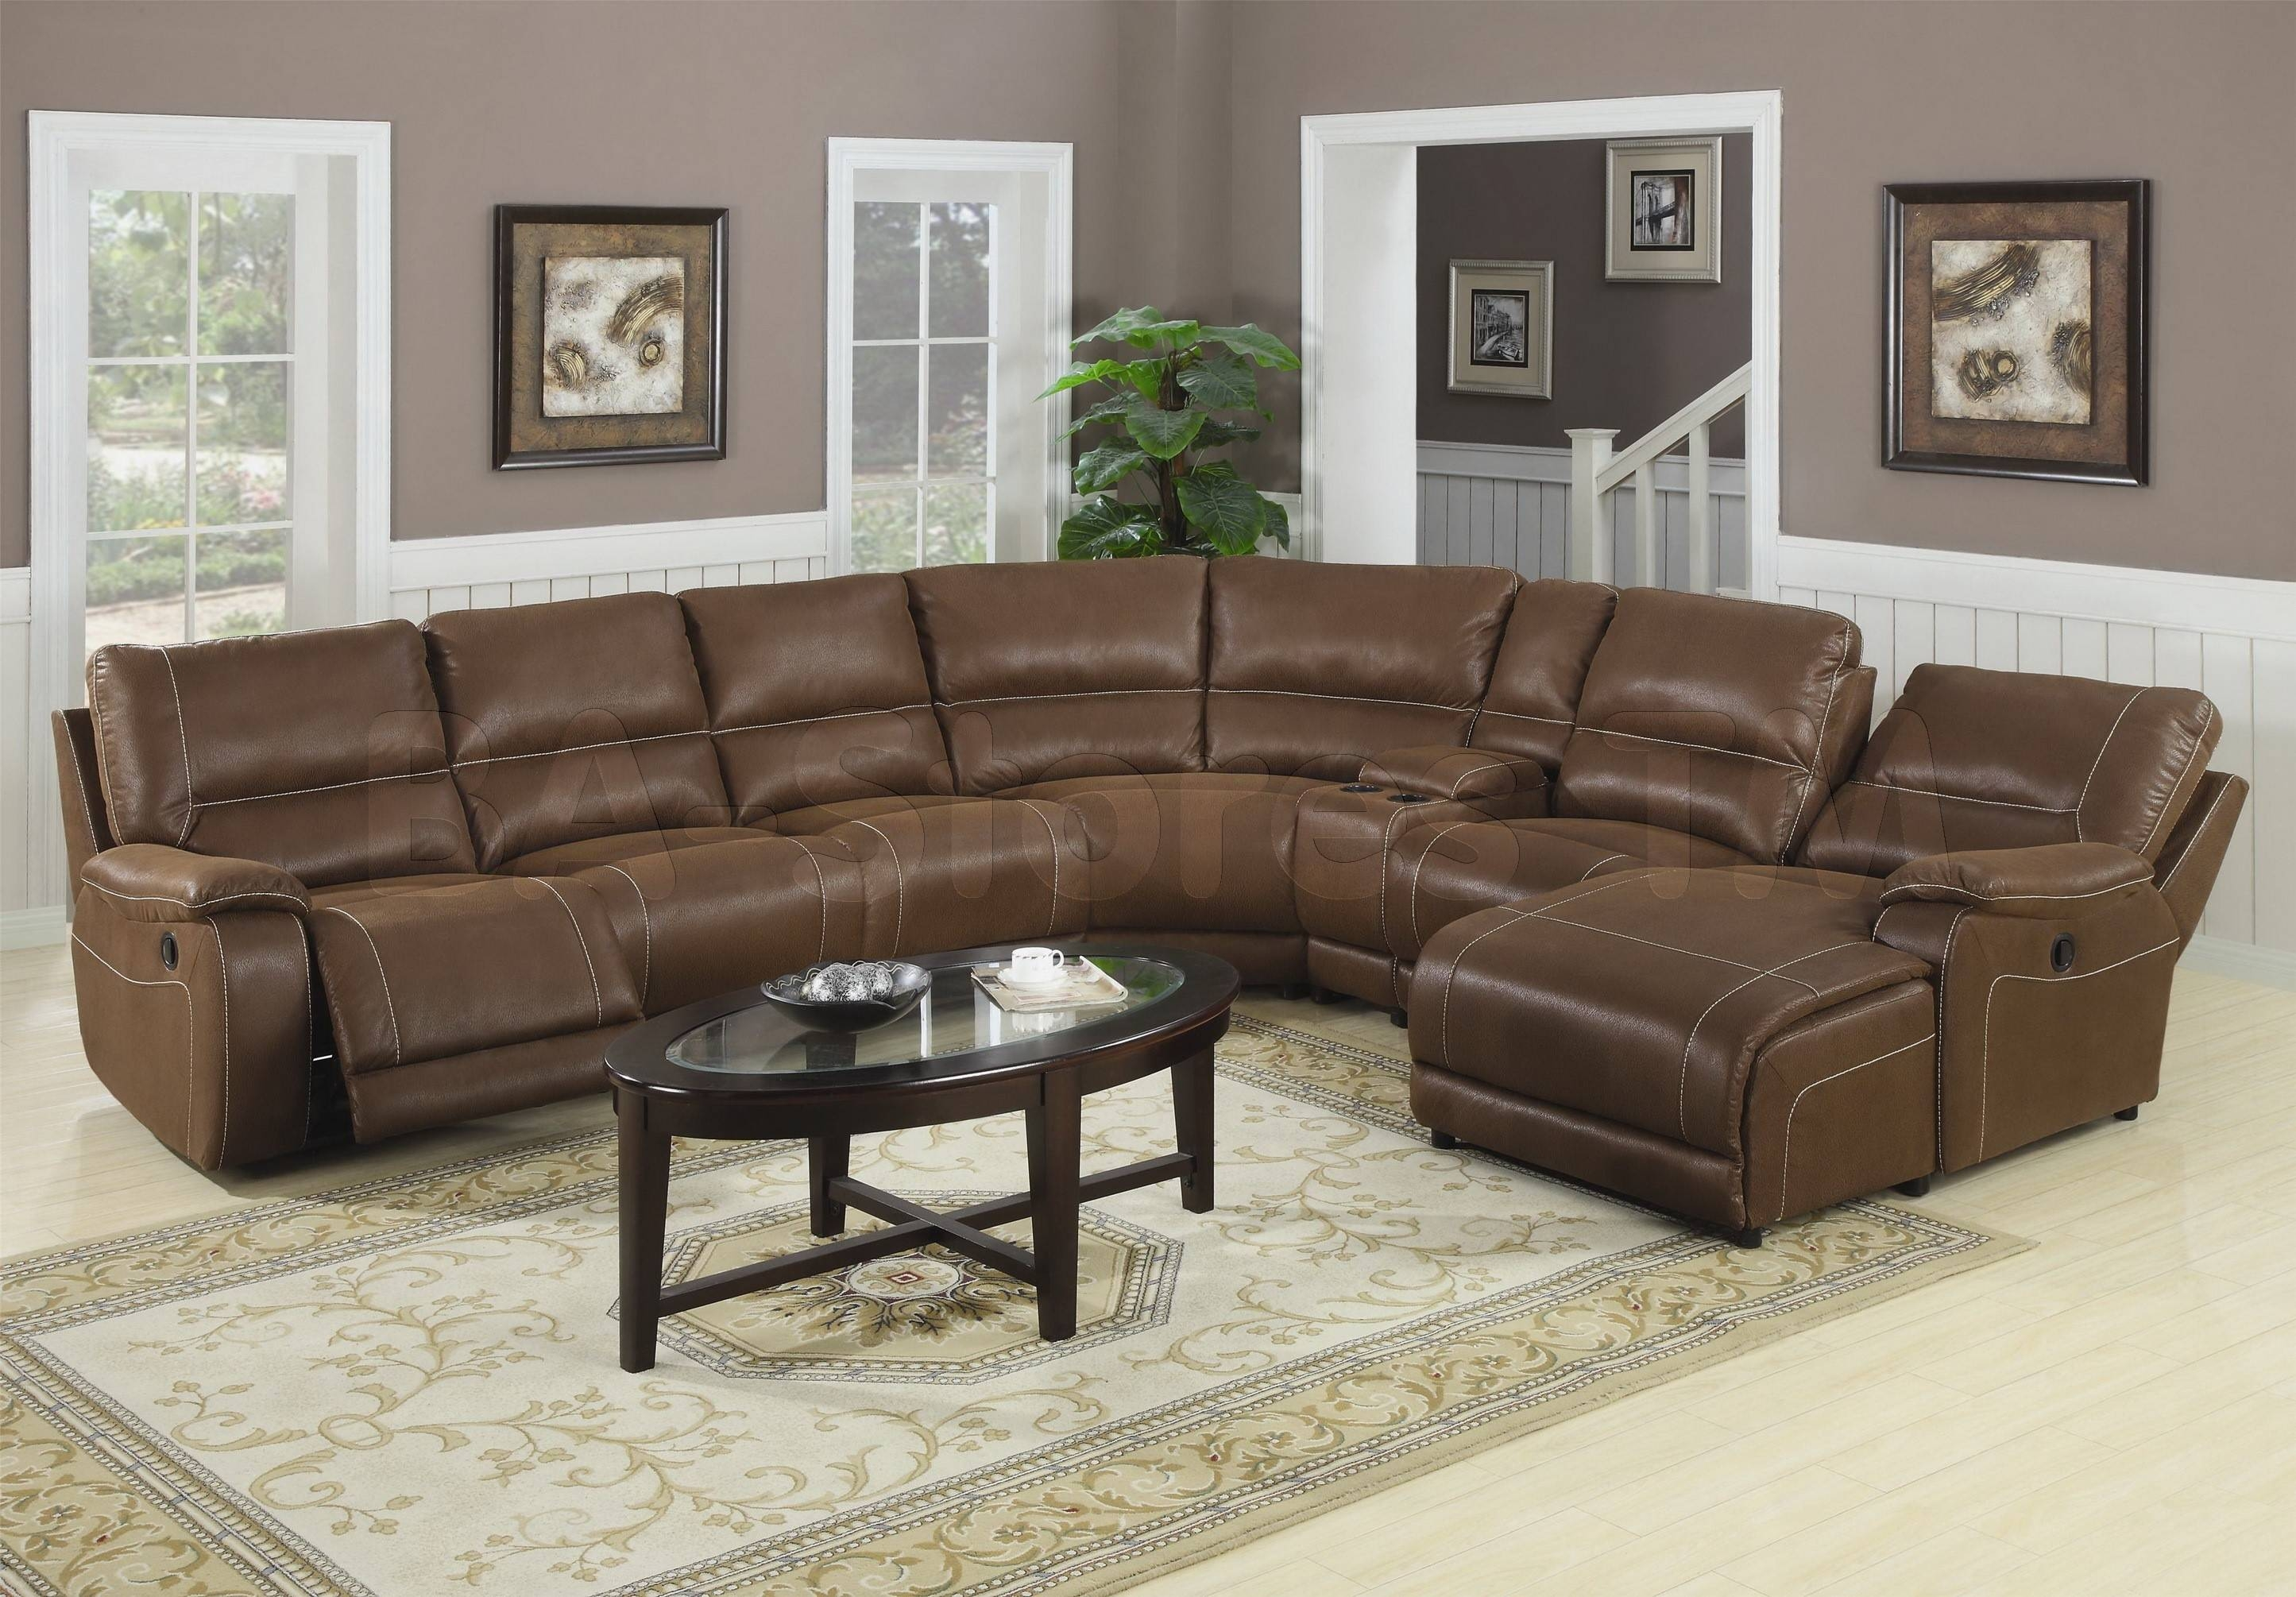 Sofas Center : Cozy Microsuede Sectional Sofas About Remodel Black regarding Cozy Sectional Sofas (Image 22 of 30)